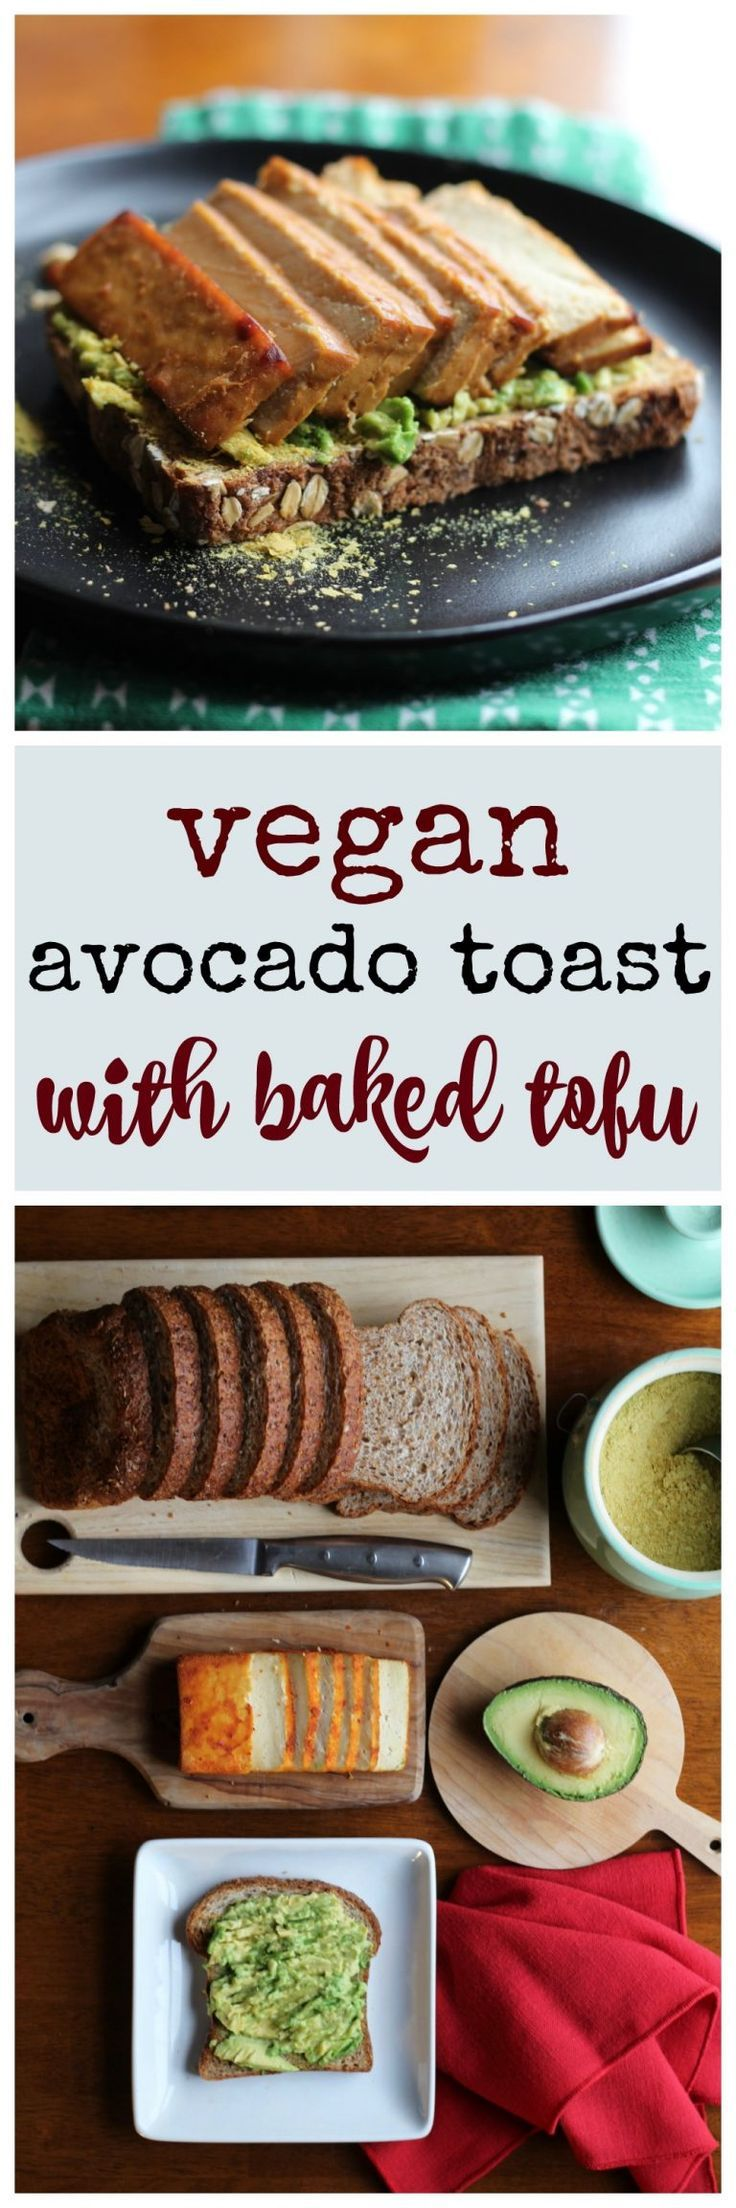 This simple vegan avocado toast recipe includes baked tofu and a sprinkling of nutritional yeast flakes. Save time by using packaged baked tofu. Teriyaki tofu & sriracha tofu are particularly good. This delicious start to the day has a hit of protein and fat to keep me going until lunchtime. via @cadryskitchen #vegan #breakfast #breakfastrecipes #tofu #toast #avocado #avocadotoast #traderjoes #sriracha